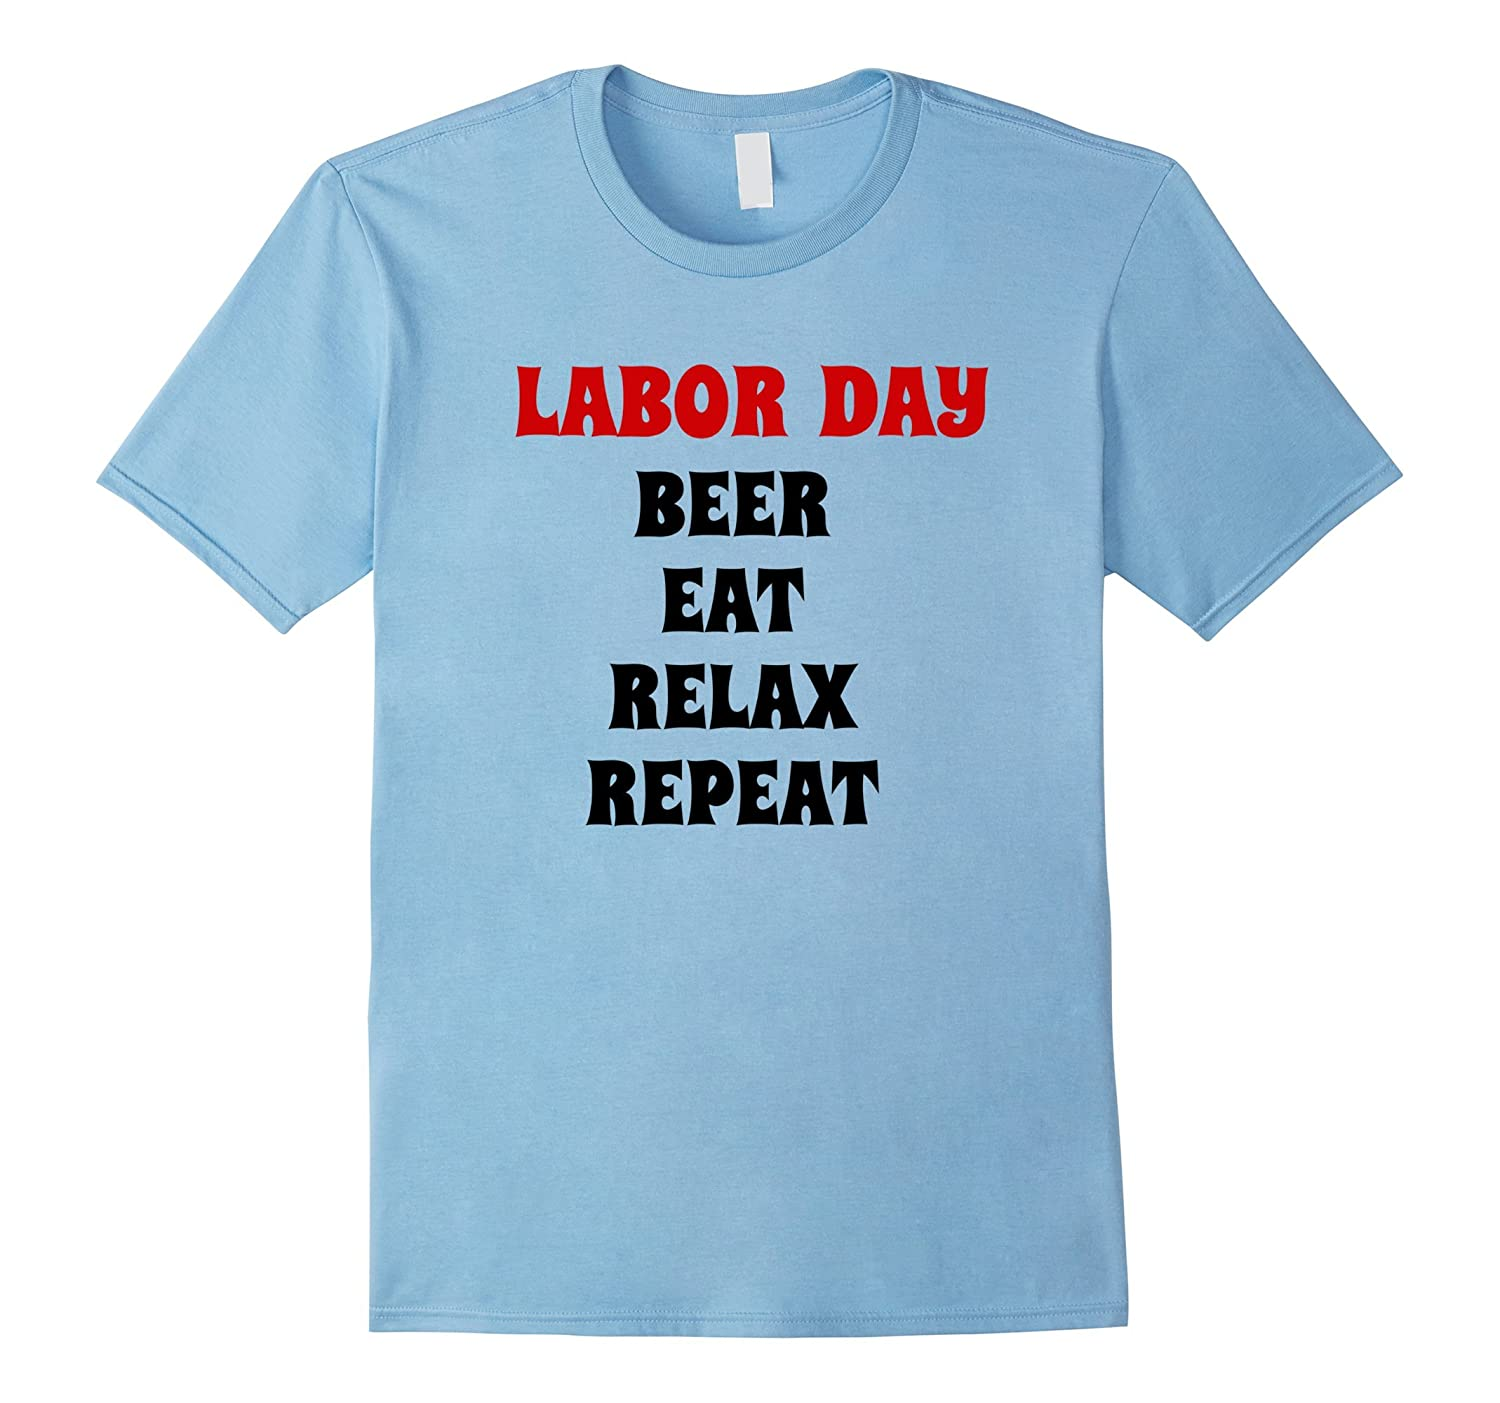 Labor Day T shirt Beer Eat Relax Repeat Funny Gift-BN